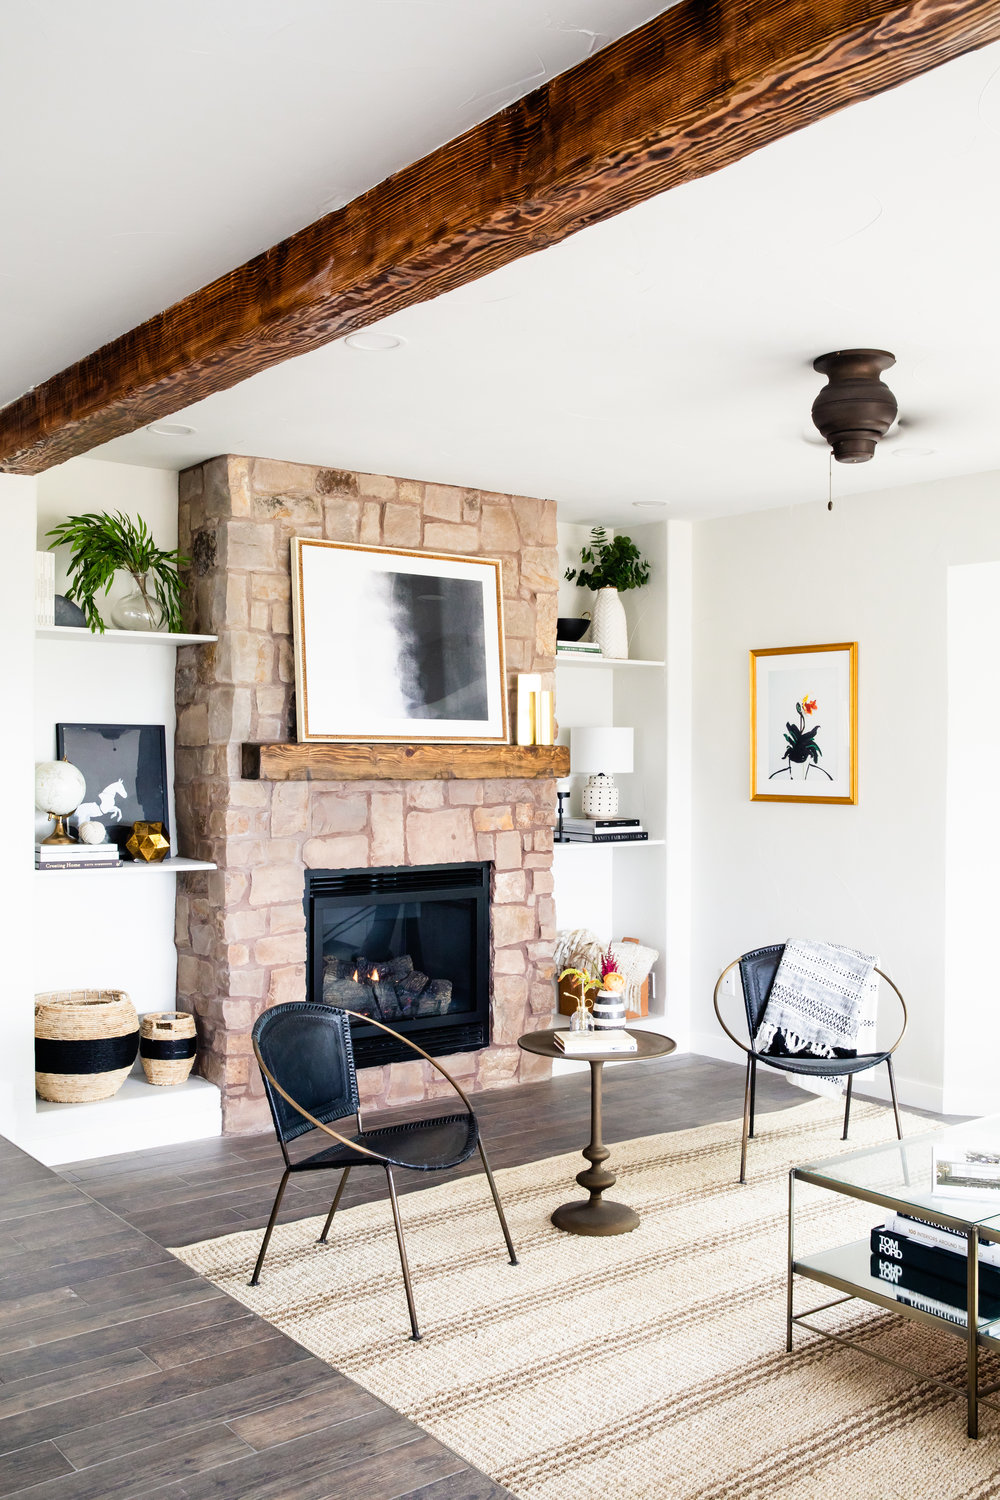 HGTV home renovation for new pilot show in modern, rustic feel with wooden beam, stone fireplace, plants, and modern artwork.